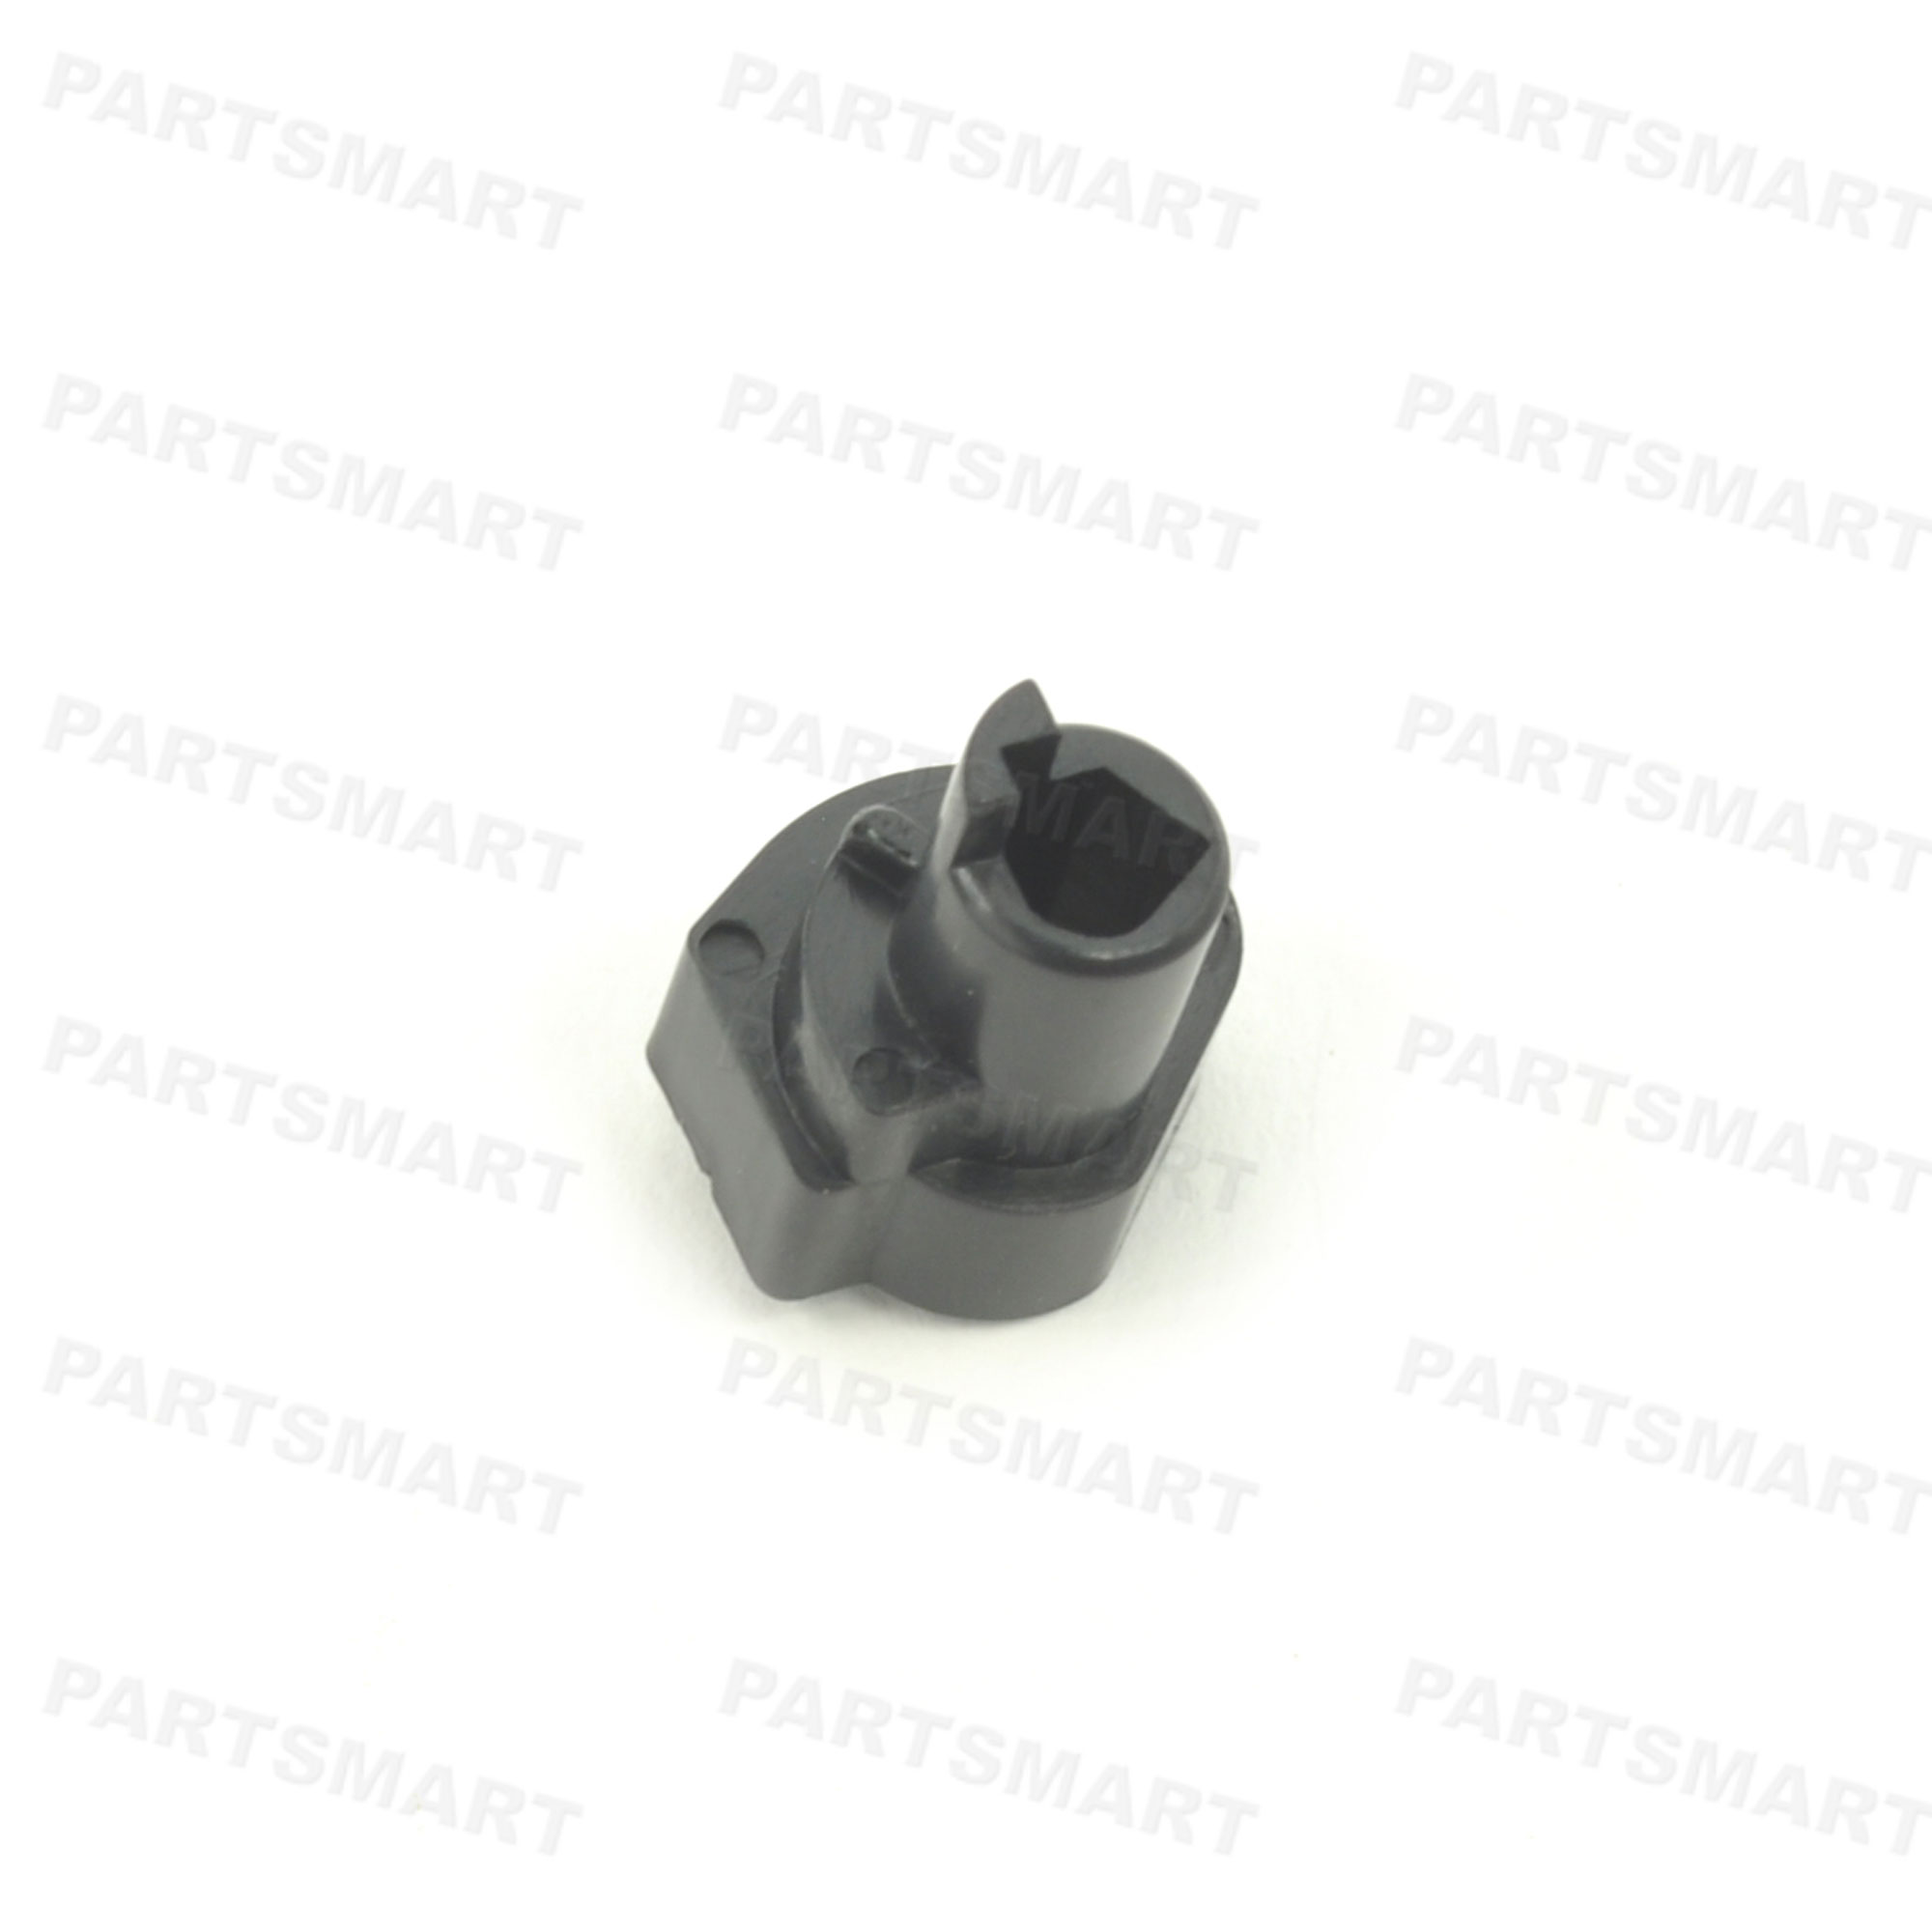 CAM-M402-L Cam, Separation, Left for HP LaserJet Enterprise M506, LaserJet  Enterprise M527 MFP, LaserJet Pro M501